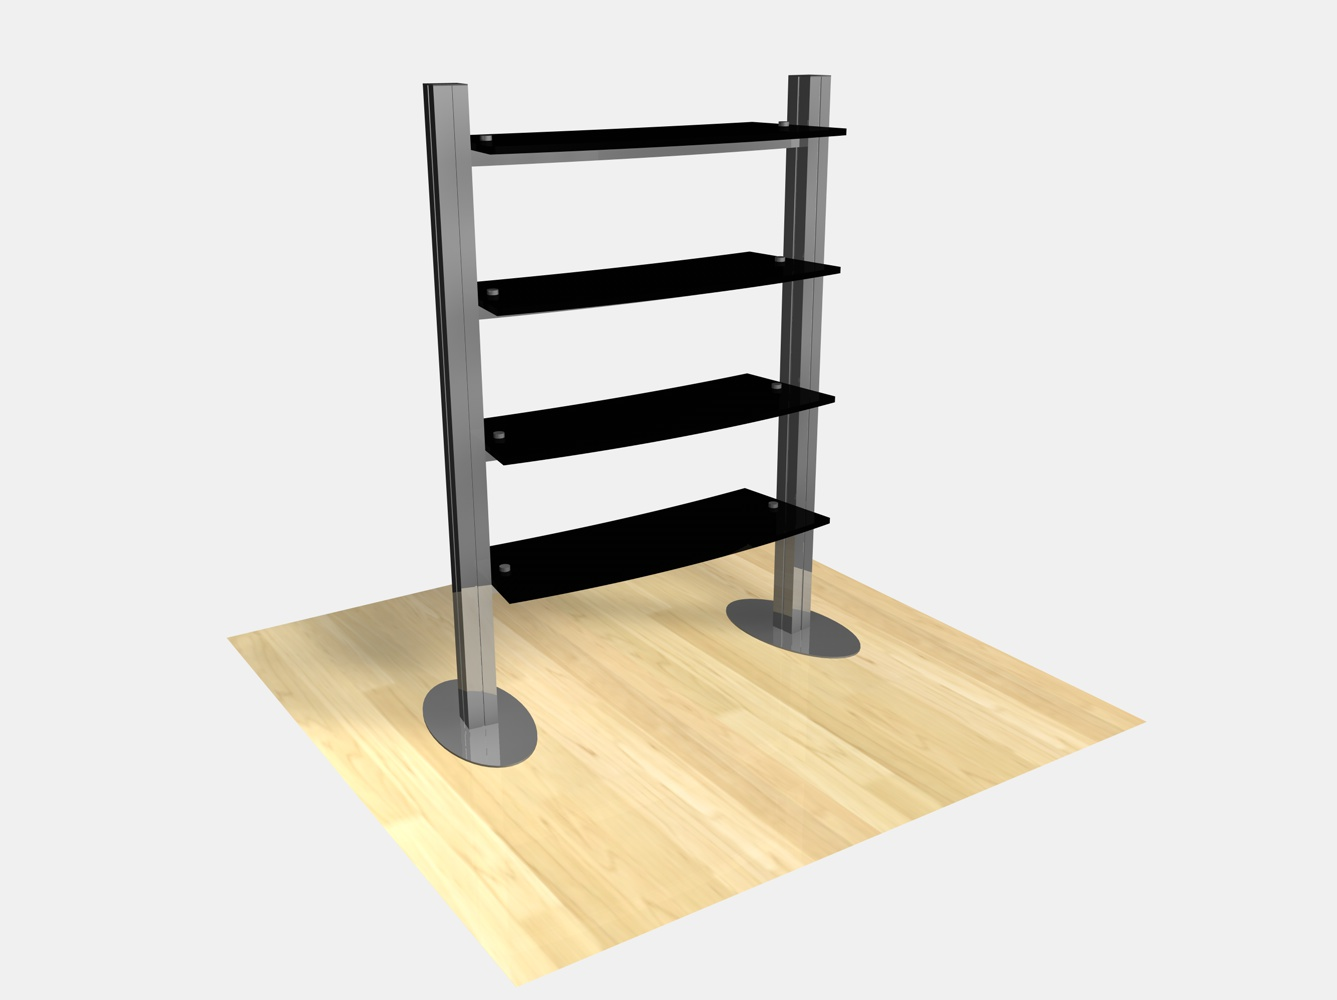 Exhibition Stand Shelves : Exhibit design search re freestanding shelf